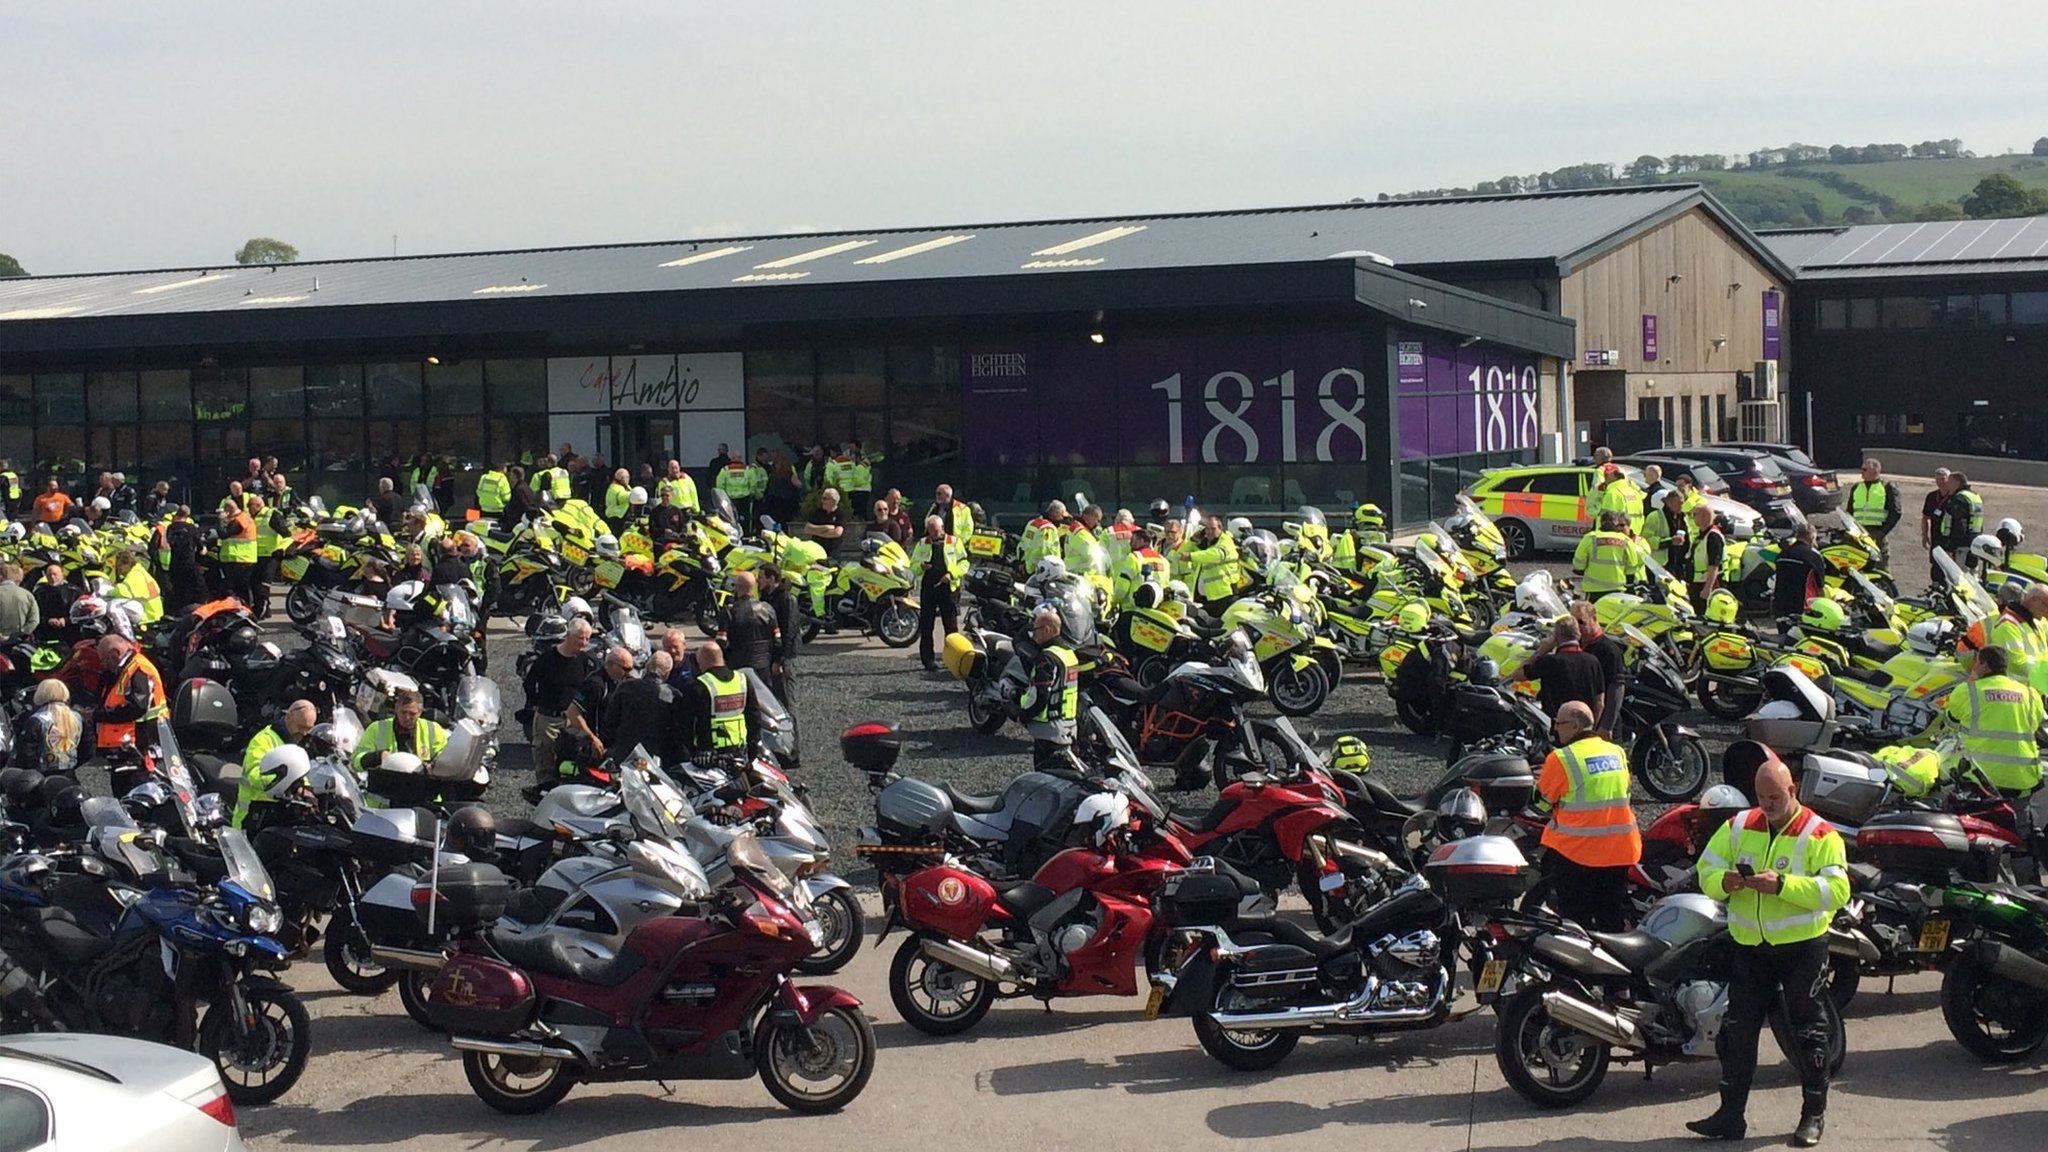 Russell Curwen death: Motorbike convoy for Kendal blood biker funeral